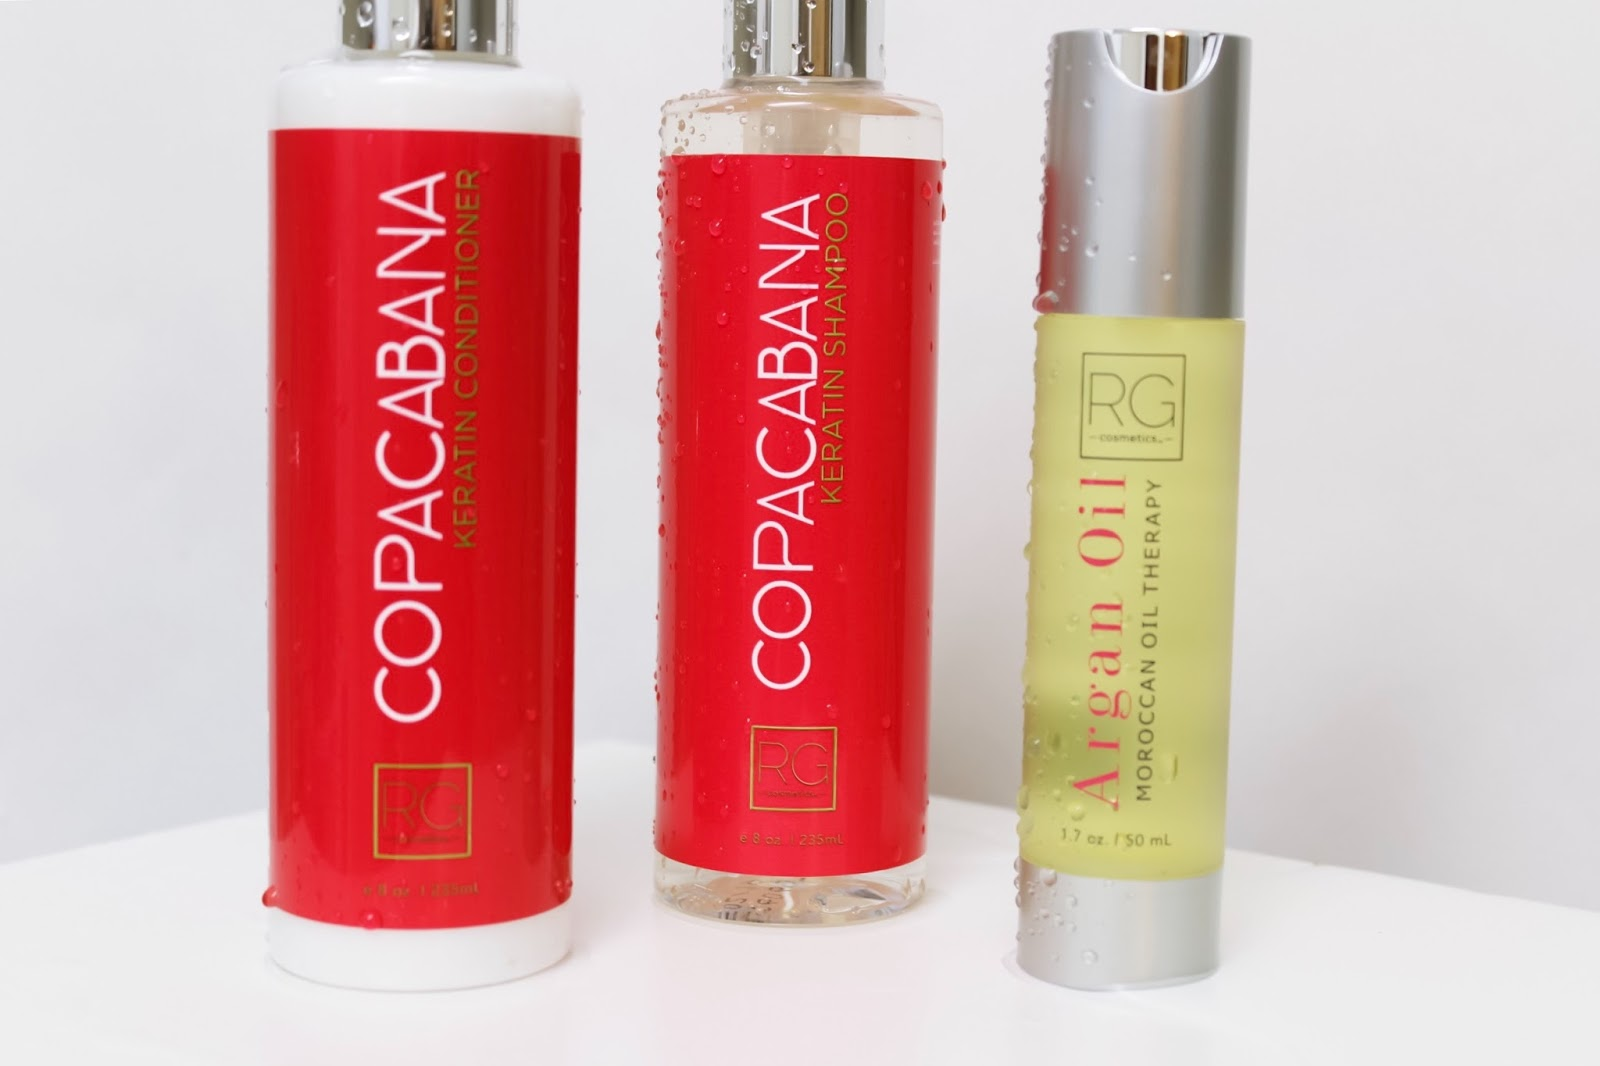 3 Products For Shiny & Voluminous Hair, RG Cosmetics, Copacabana, Keratin, Aragain Oil, hair products, shampoo, conditioner, hair care, healthy hair, beautiful hair, beauty products, aragon oil, moroccan oil